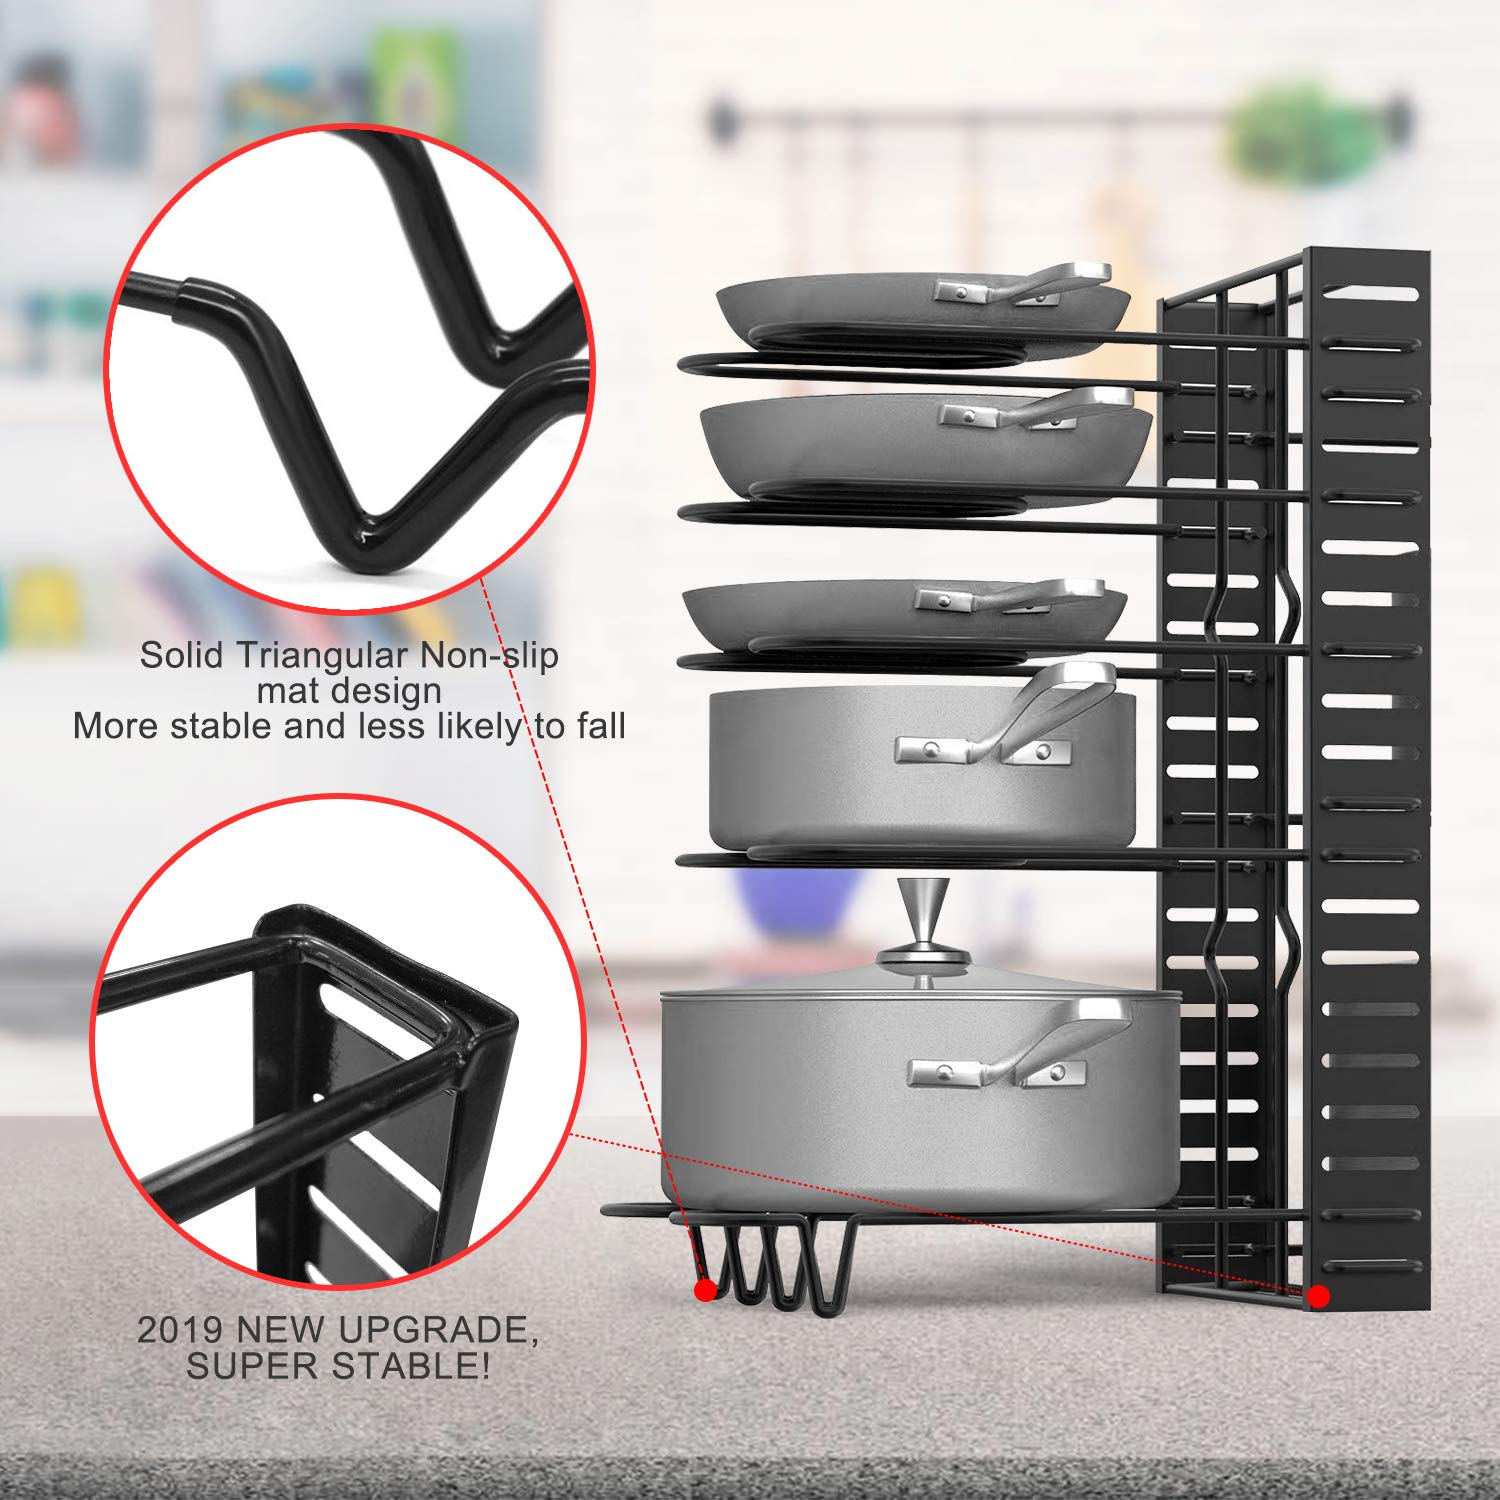 Lid Organizer Pot Holder Rack Fit for Kitchen Counter and Cabinet Pot Rack Organizers Duerer 8 Tiers Adjustable Height and Position Pots /& Pans Organizer with 3 DIY Methods Black, 2019 Upgraded